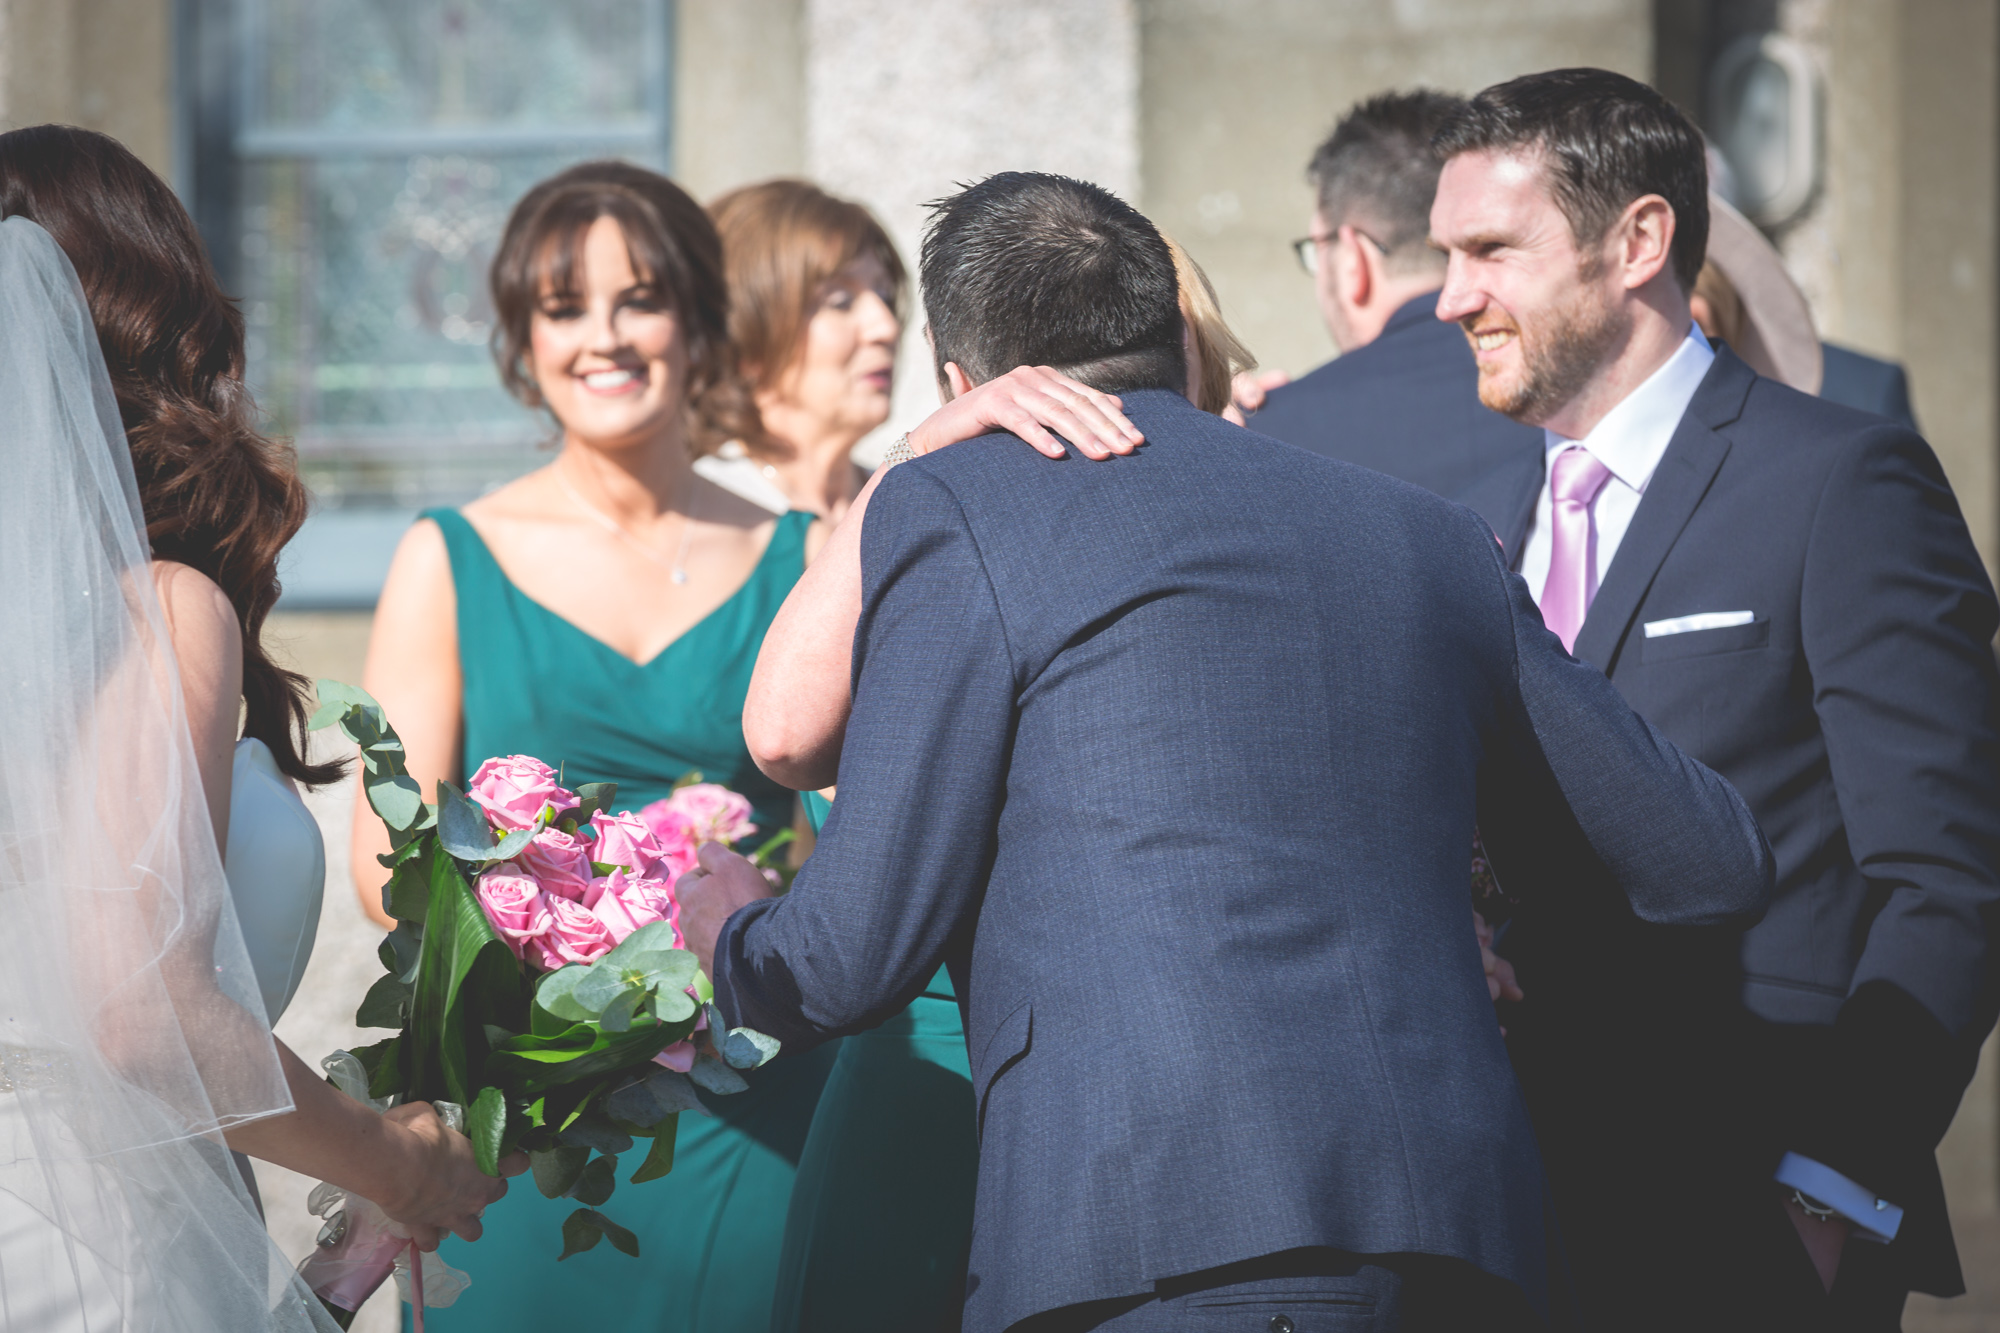 Francis&Oonagh-Ceremony-111.jpg